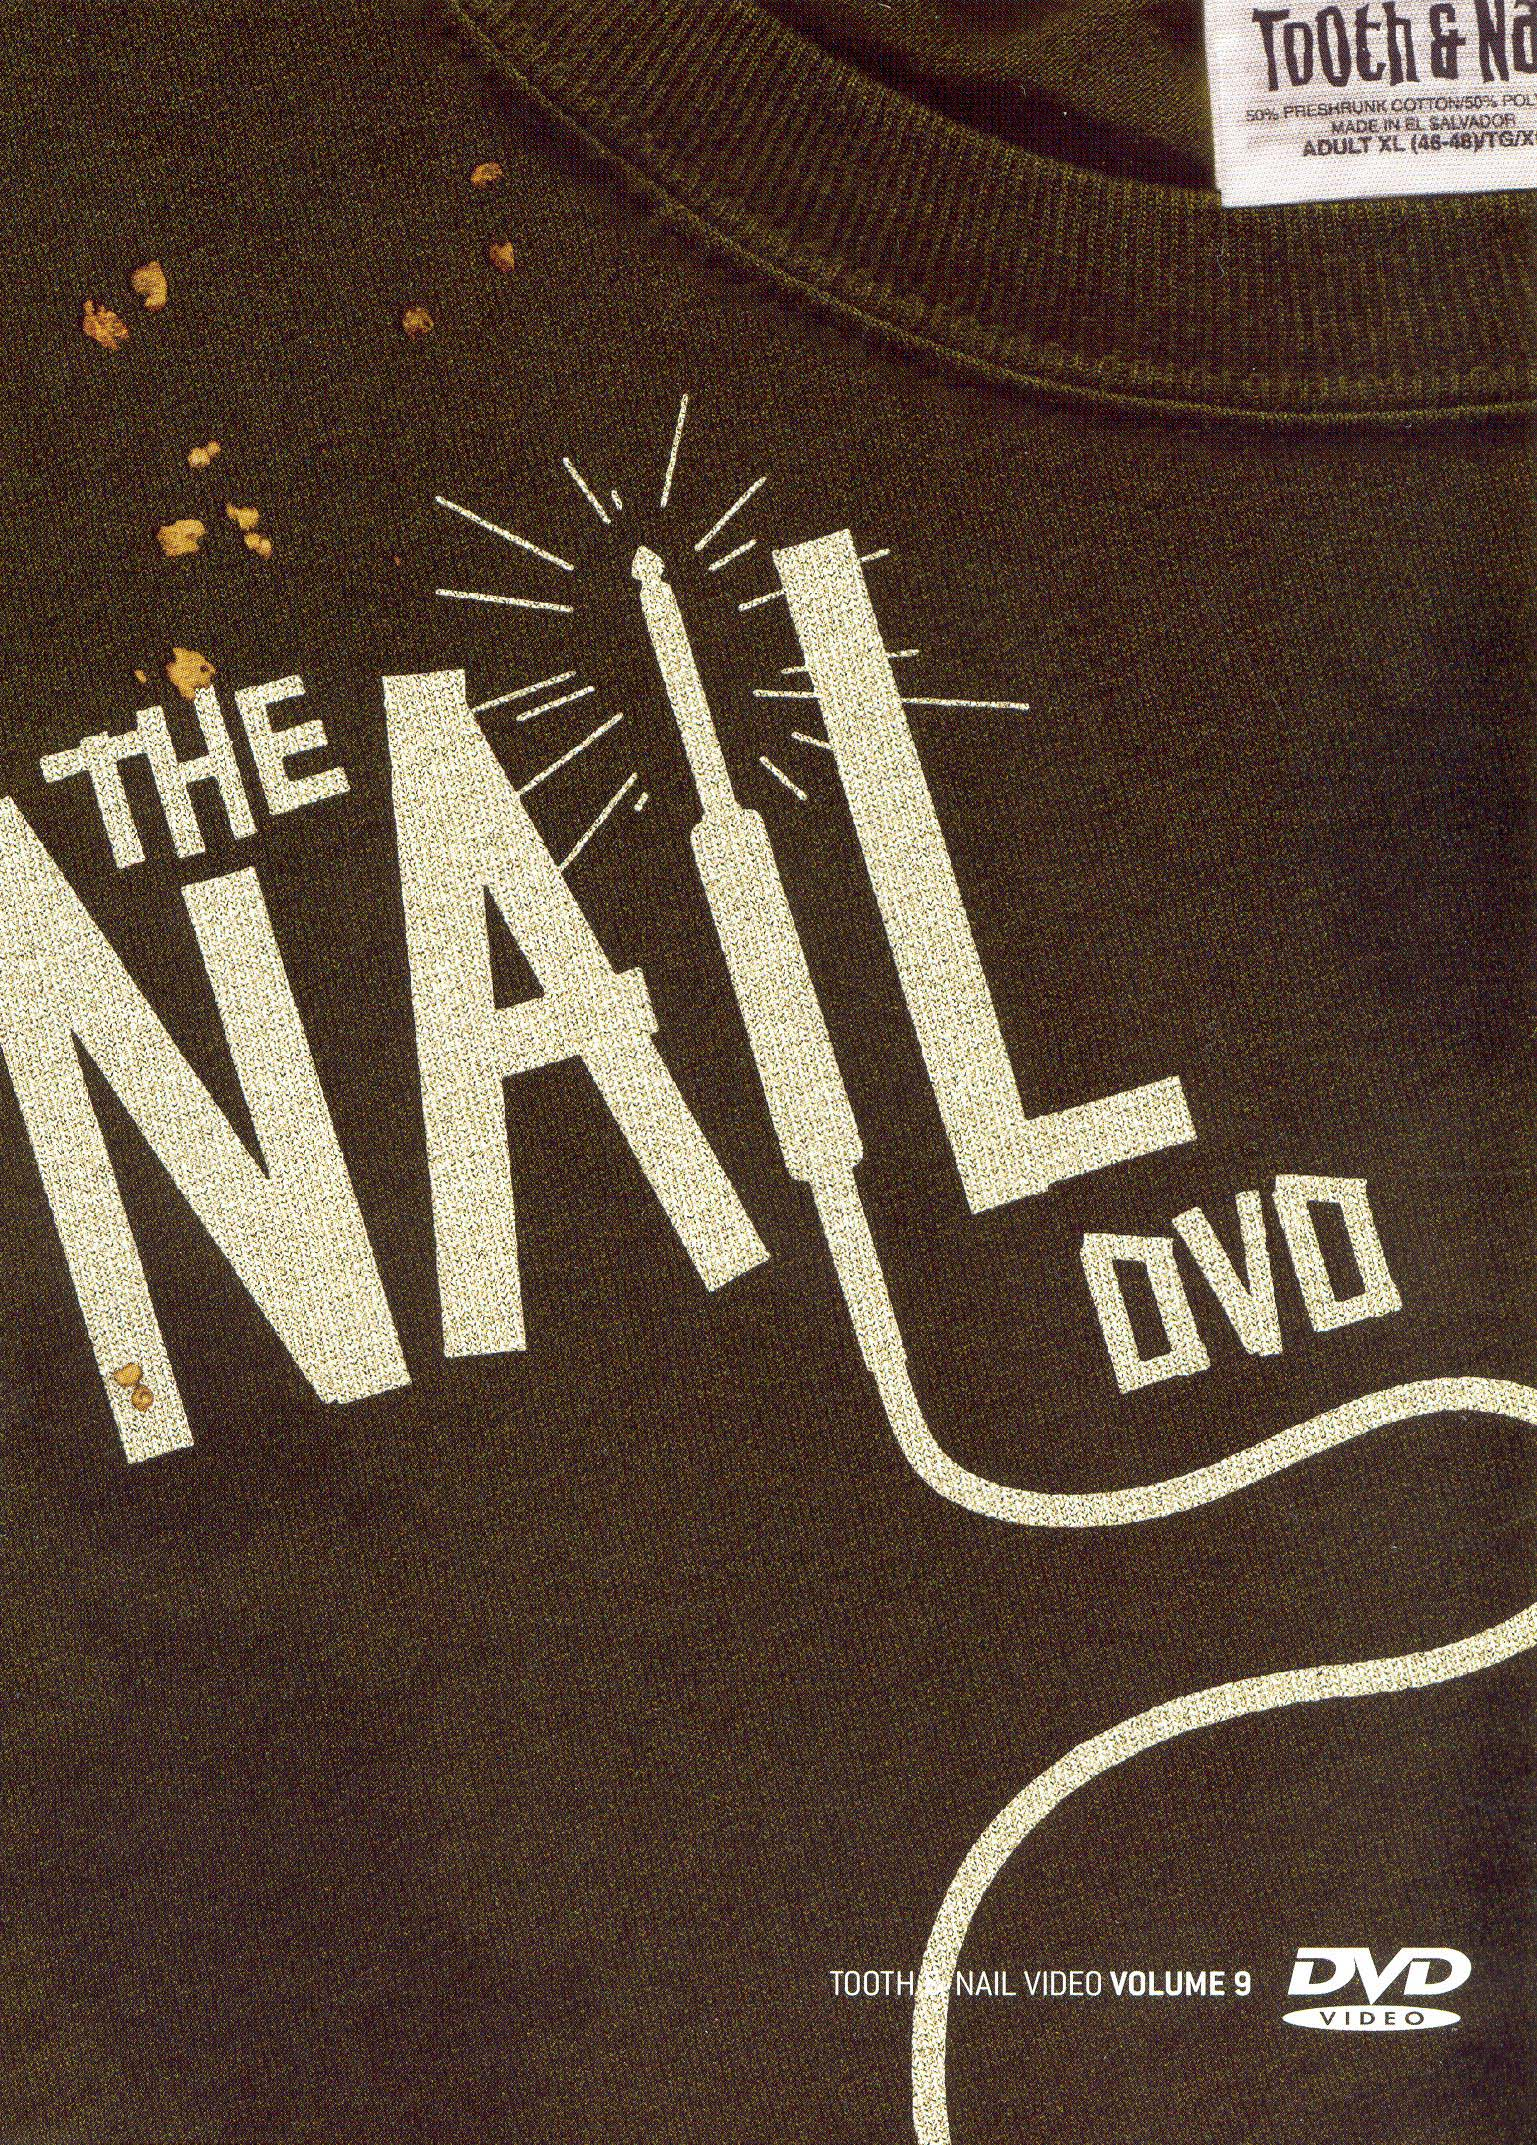 The Nail DVD: Tooth & Nail Video, Vol. 2